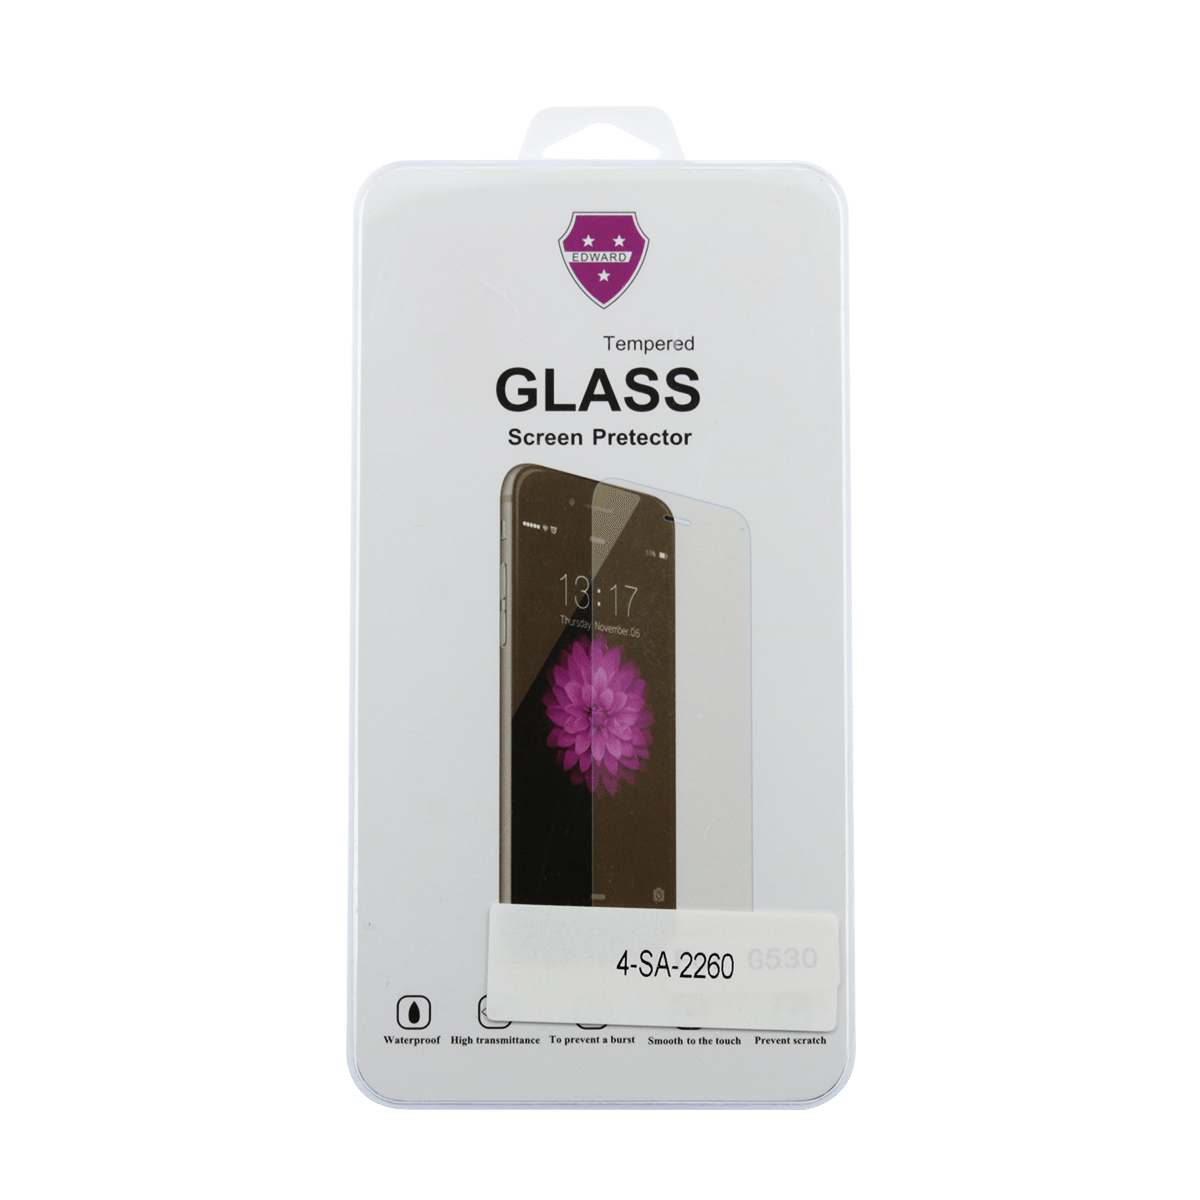 Samsung Galaxy Grand Prime Tempered Glass Protection Screen